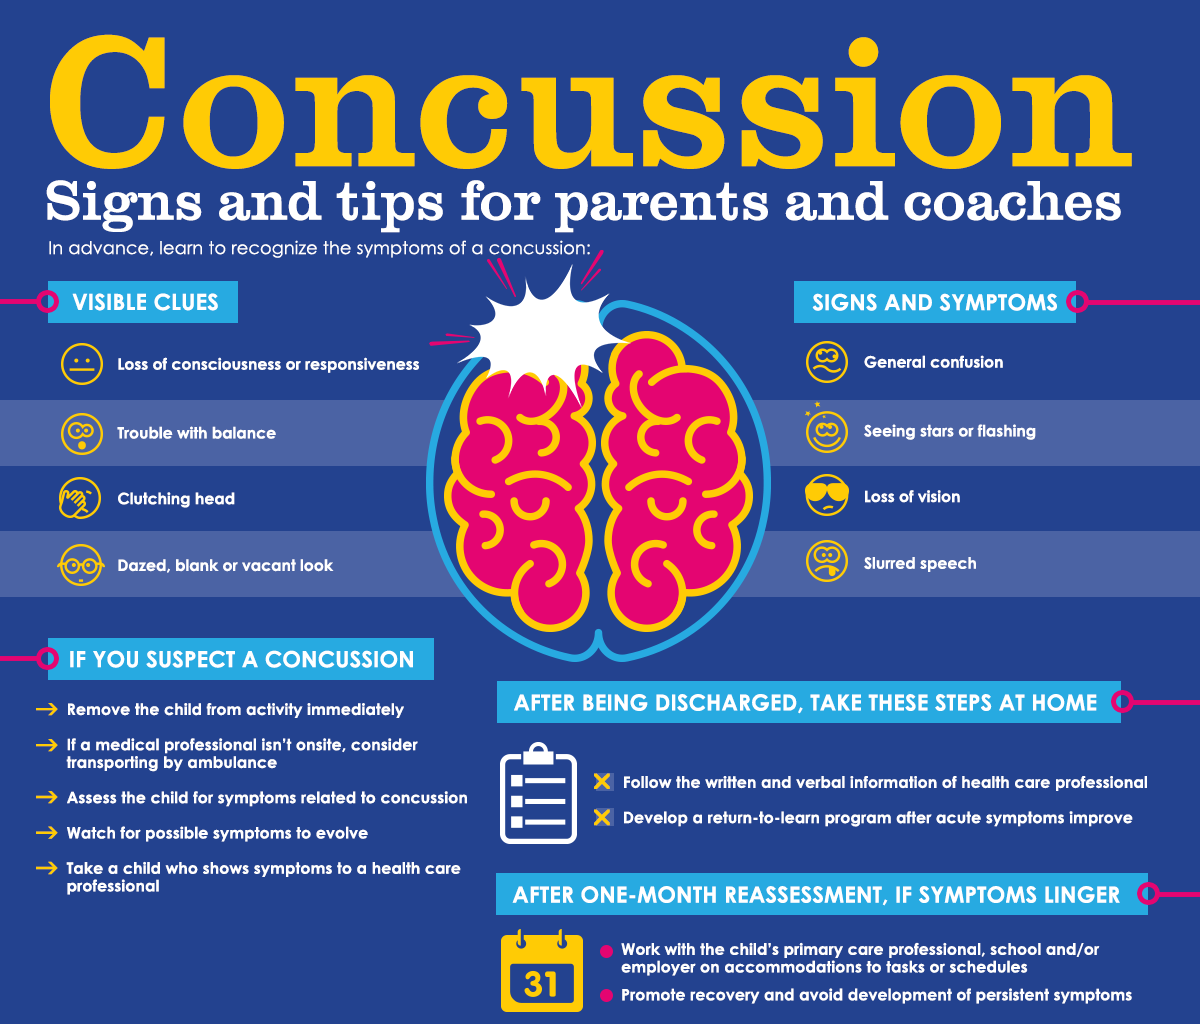 Concussion Facts When a concussion occurs or suspected